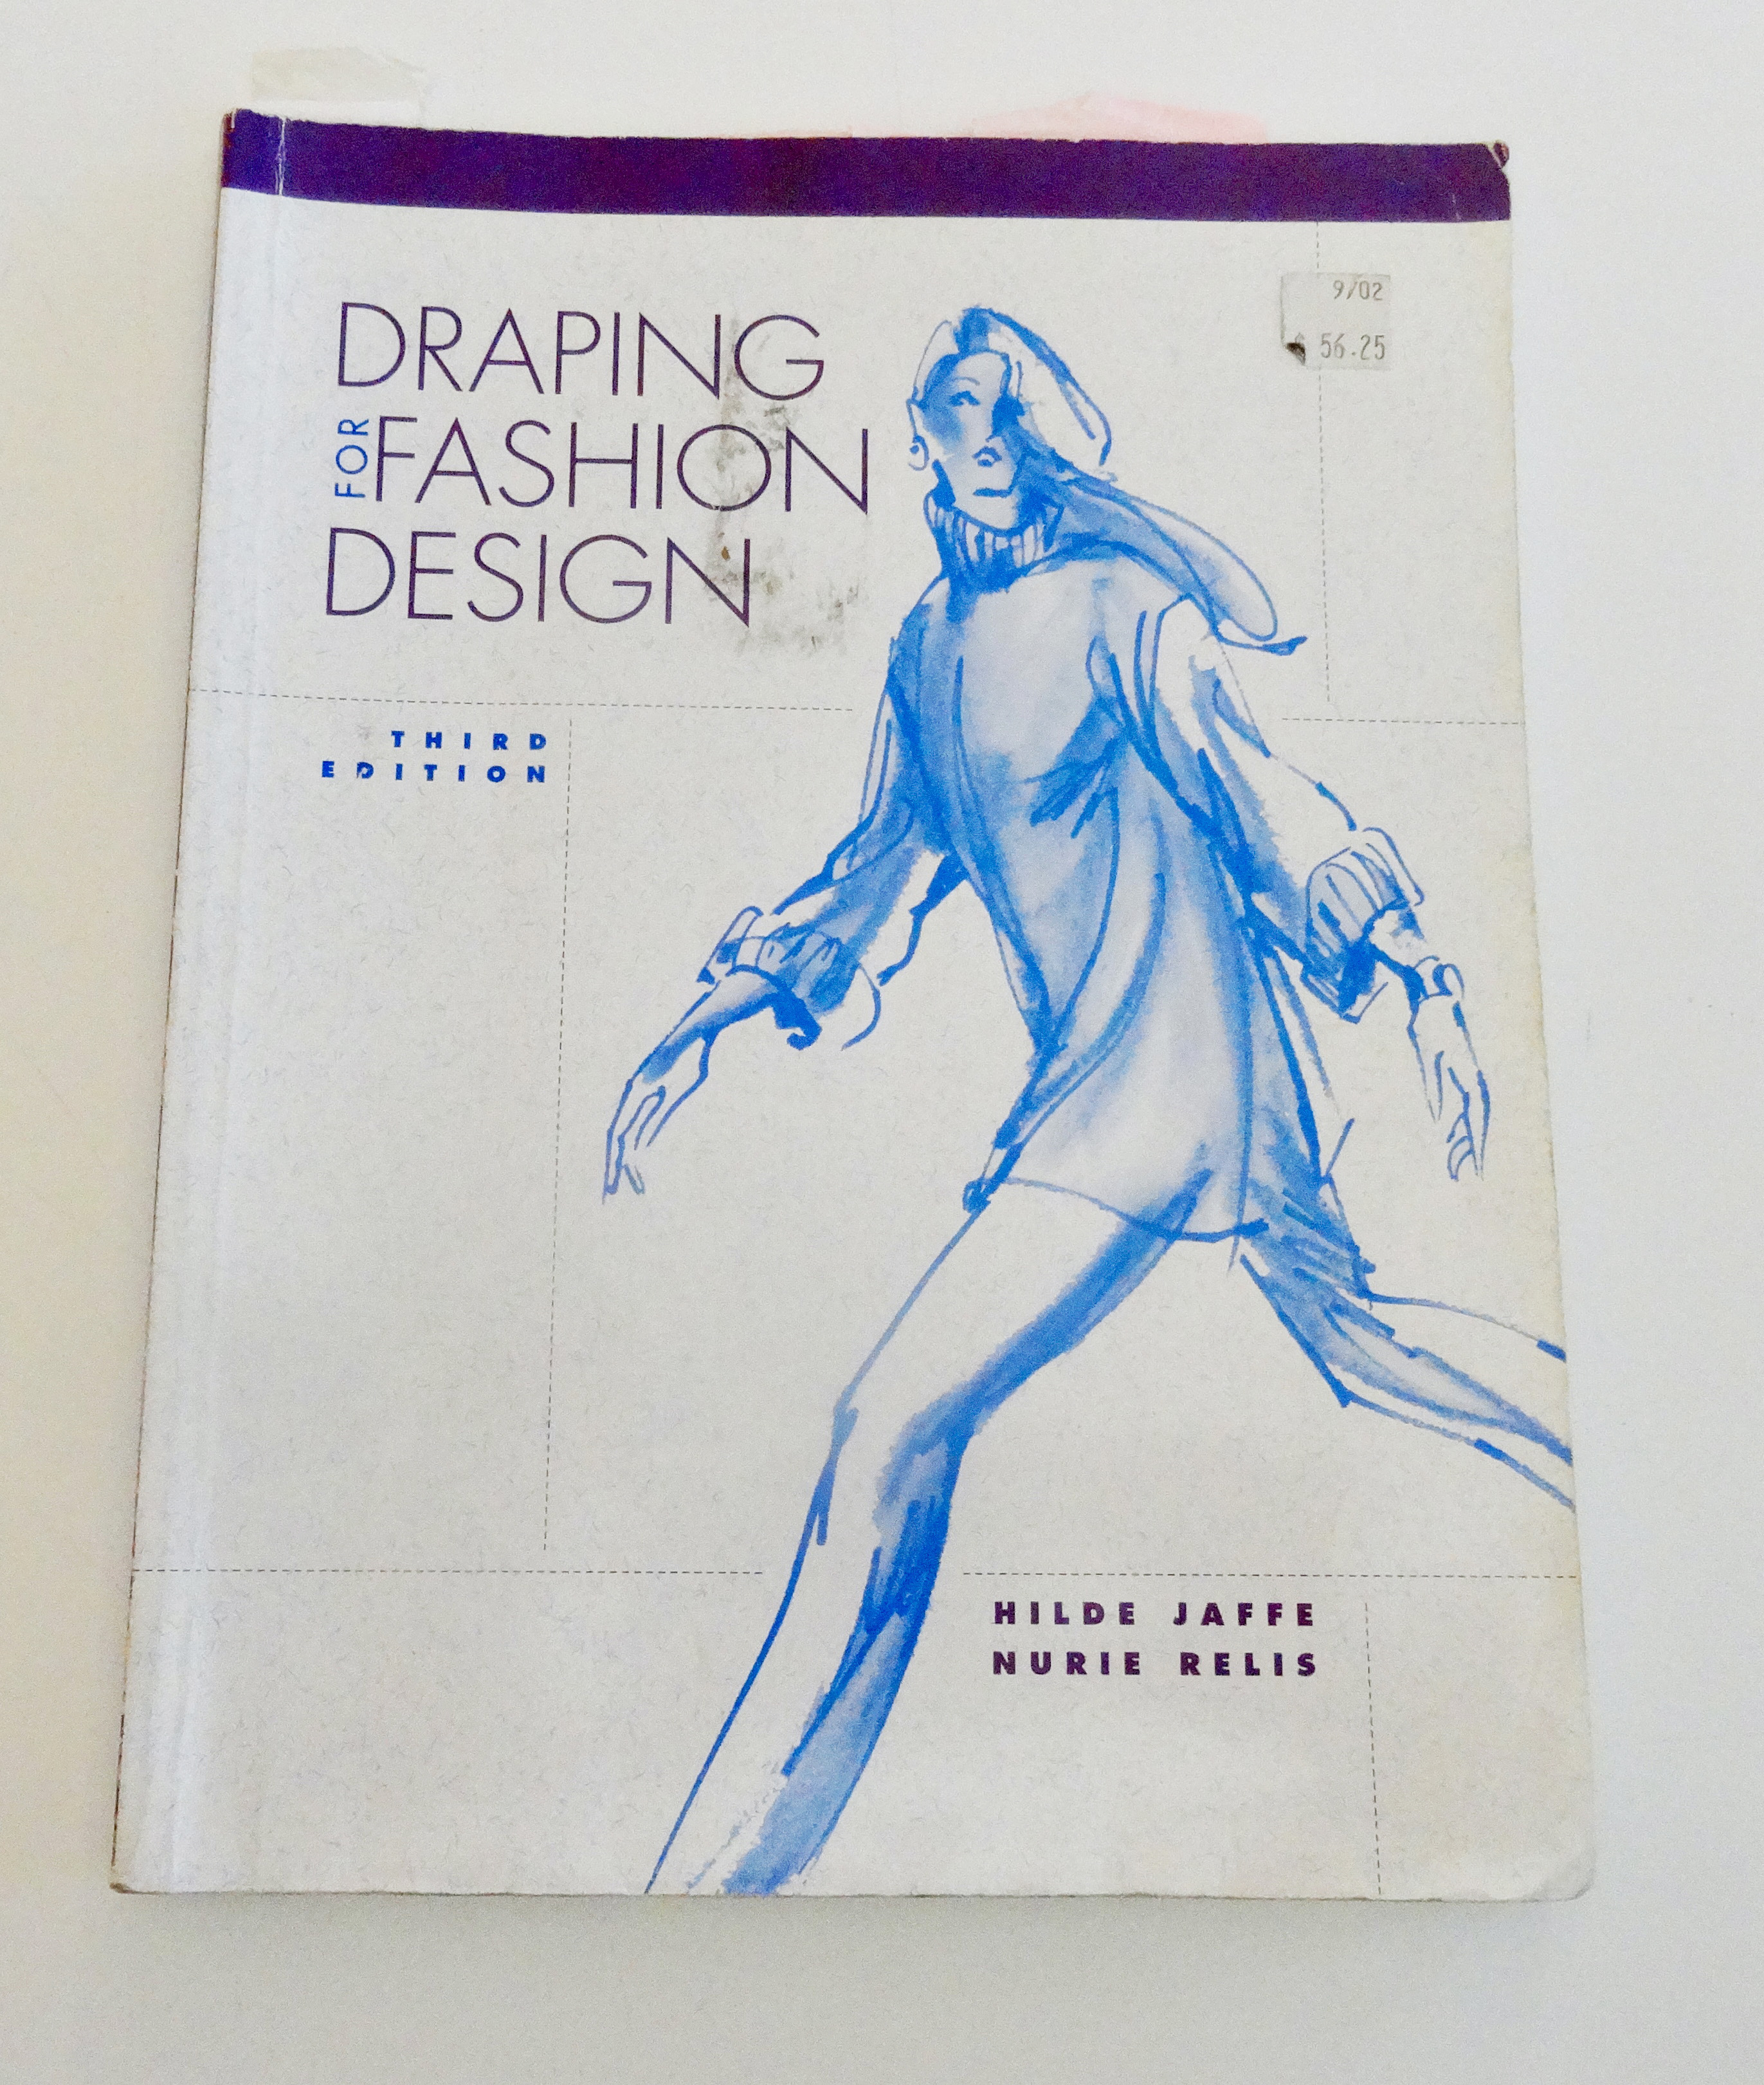 Best books on fashion draping